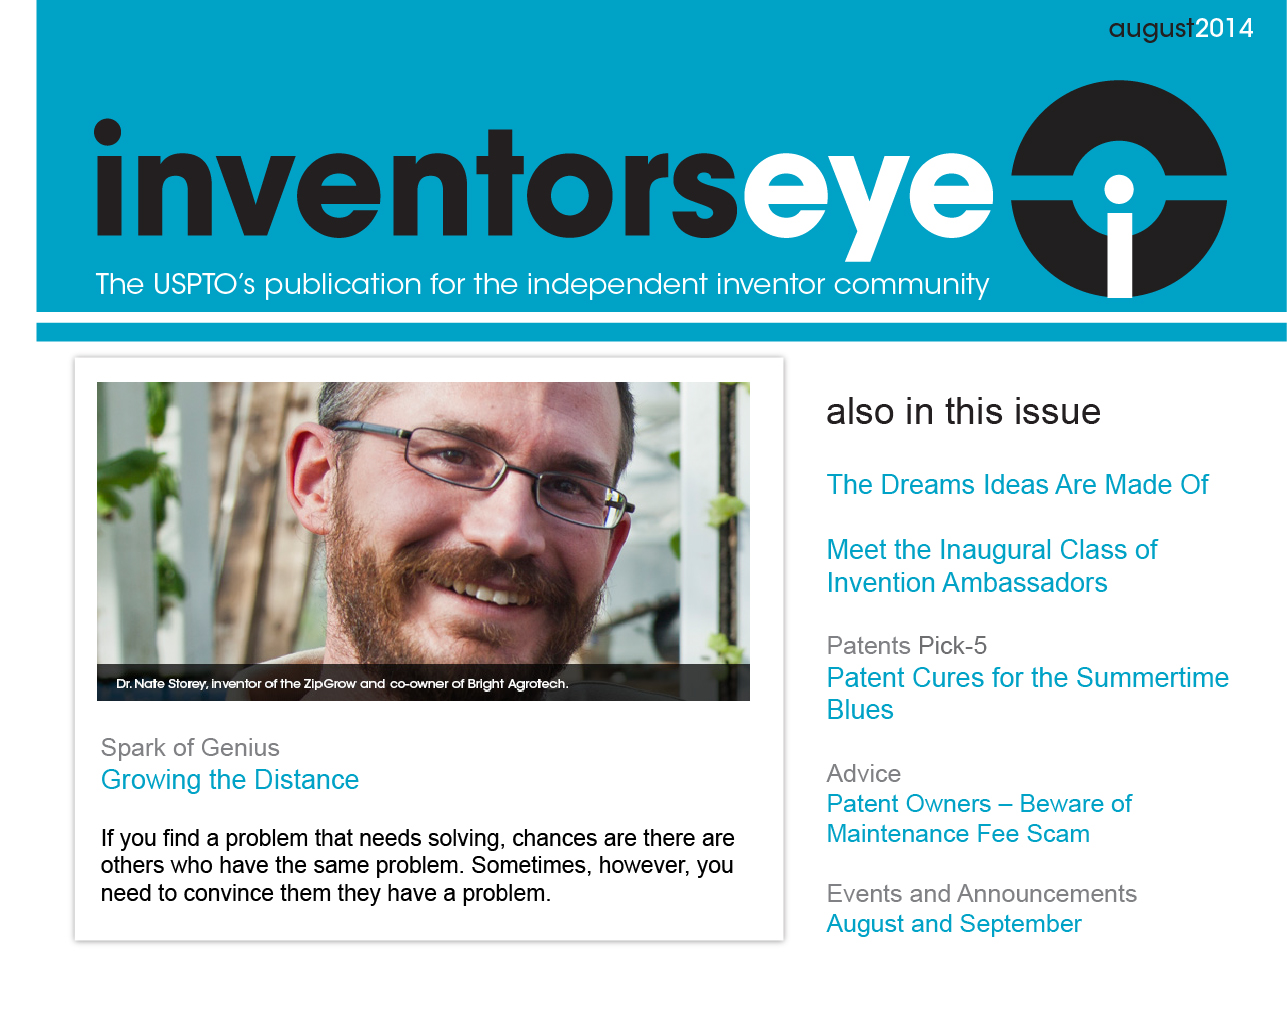 Inventors Eye August 2014. The USPTO's publication for the independent inventor community. Spark of Genius - Growing the Distance. If you find a problem that needs solving, chances are there are others who have the same problem. Sometimes, however, you need to convince them they have a problem. Also in this issue: The Dreams Ideas Are Made Of, Meet the Inaugural Class of Invention Ambassadors, Patents Pick-5 - Patent Cures for the Summertime Blues, Advice - Patent Owners – Beware of Maintenance Fee Scam, Events and Announcements - August and September.